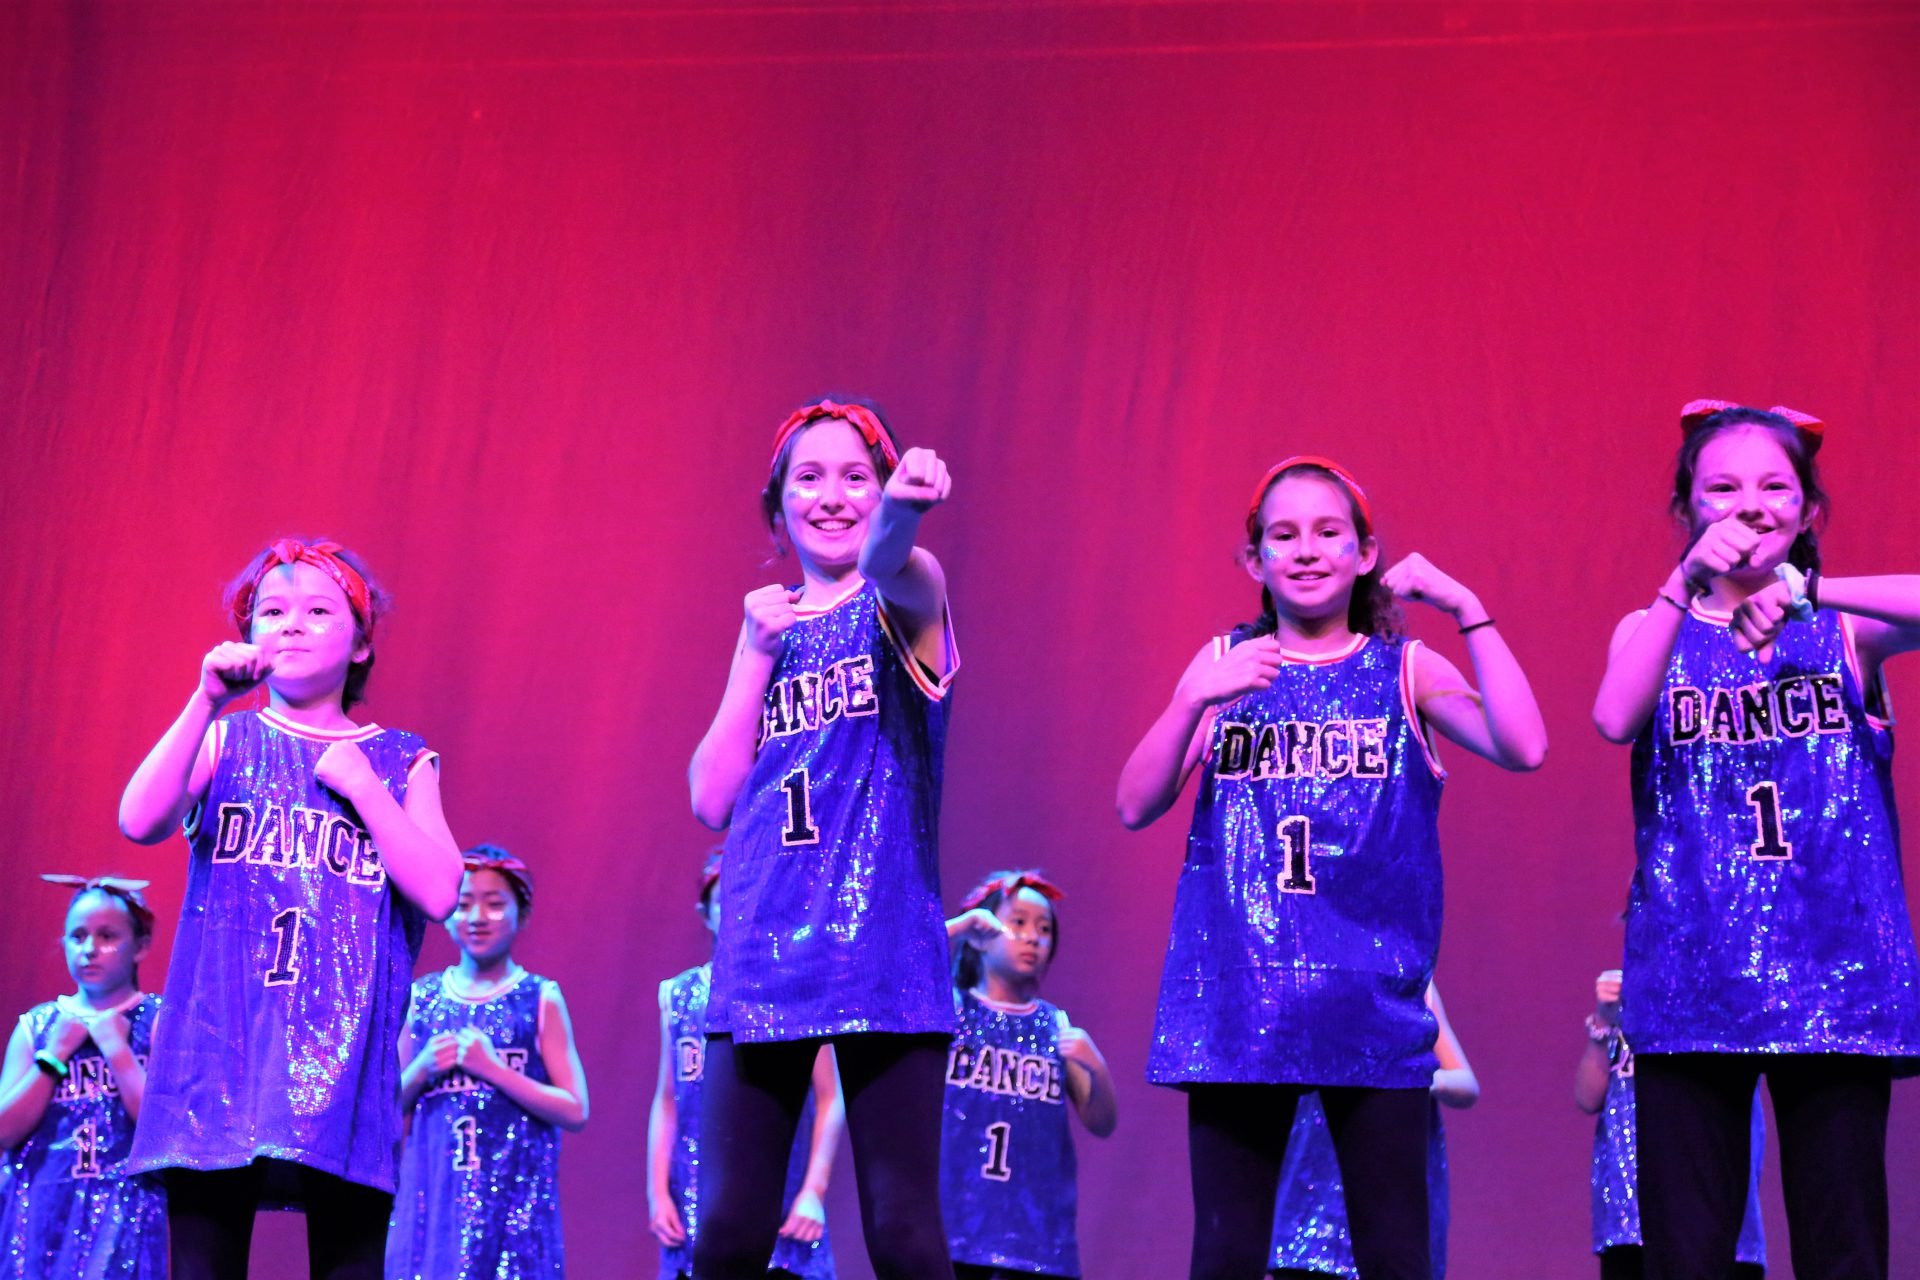 WISS Junior dancers during the Dance Festival at The Western International School of Shanghai (WISS)